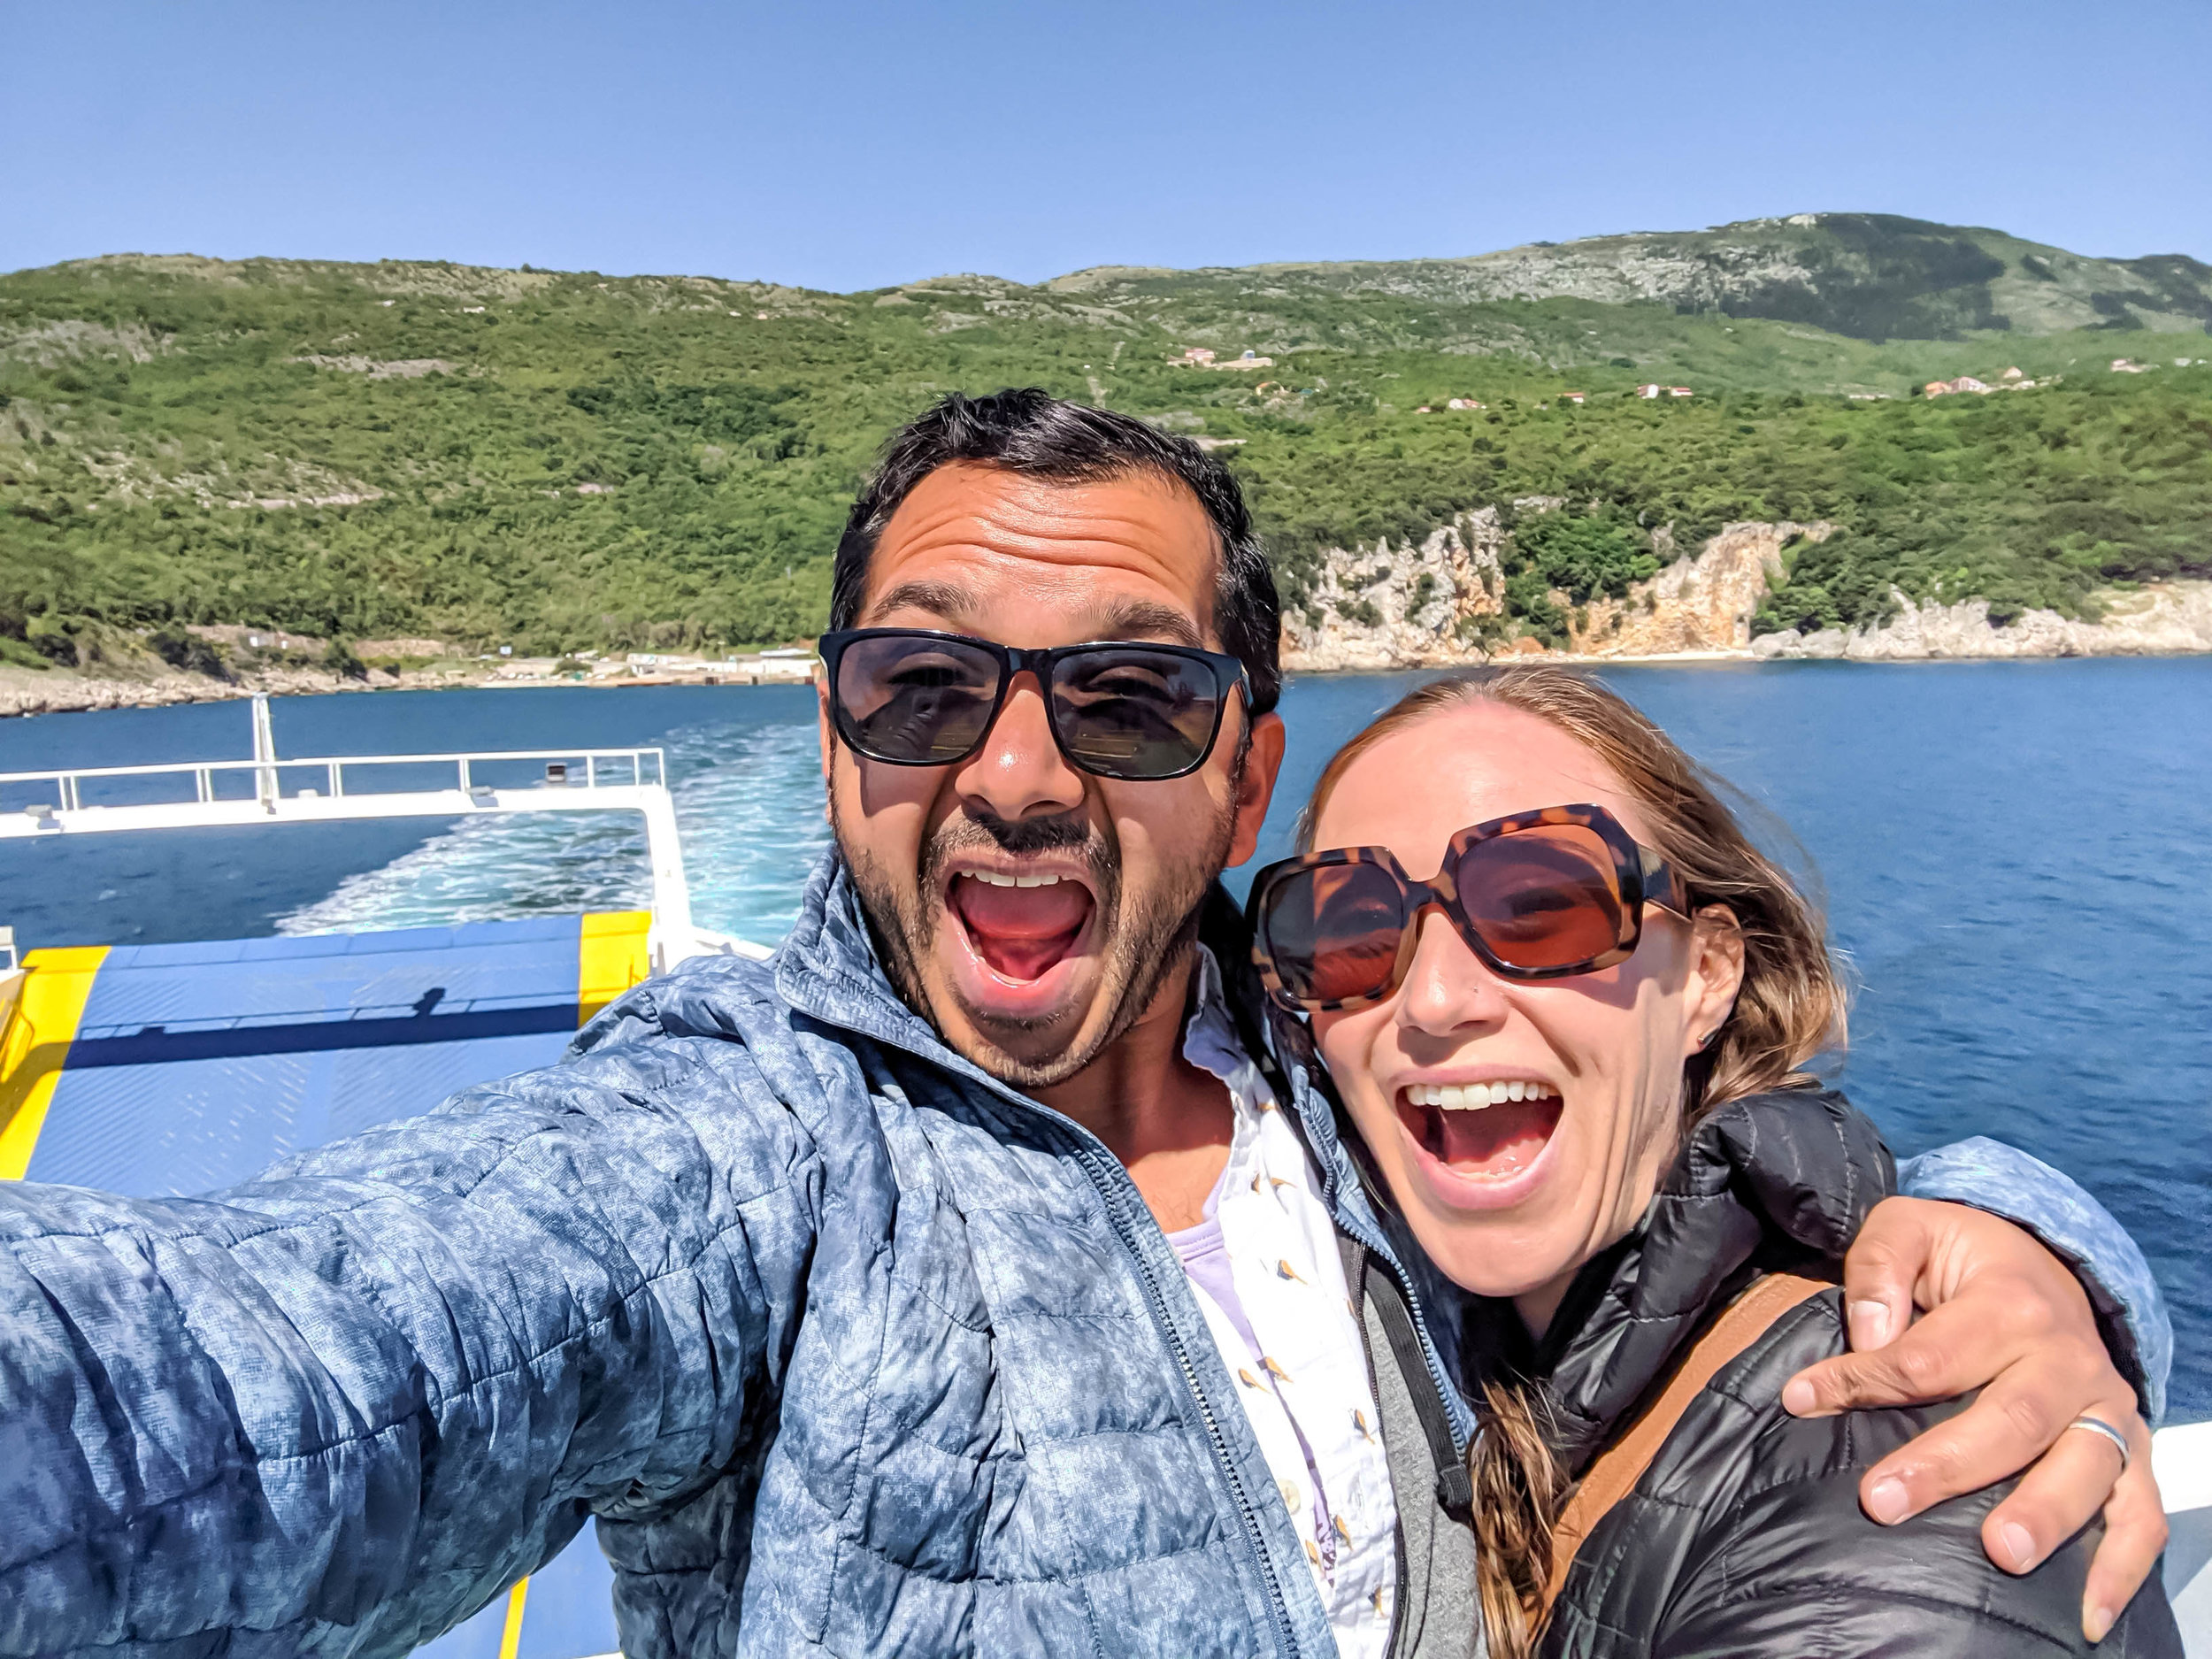 On the car ferry from Brestova to Cres, Croatia